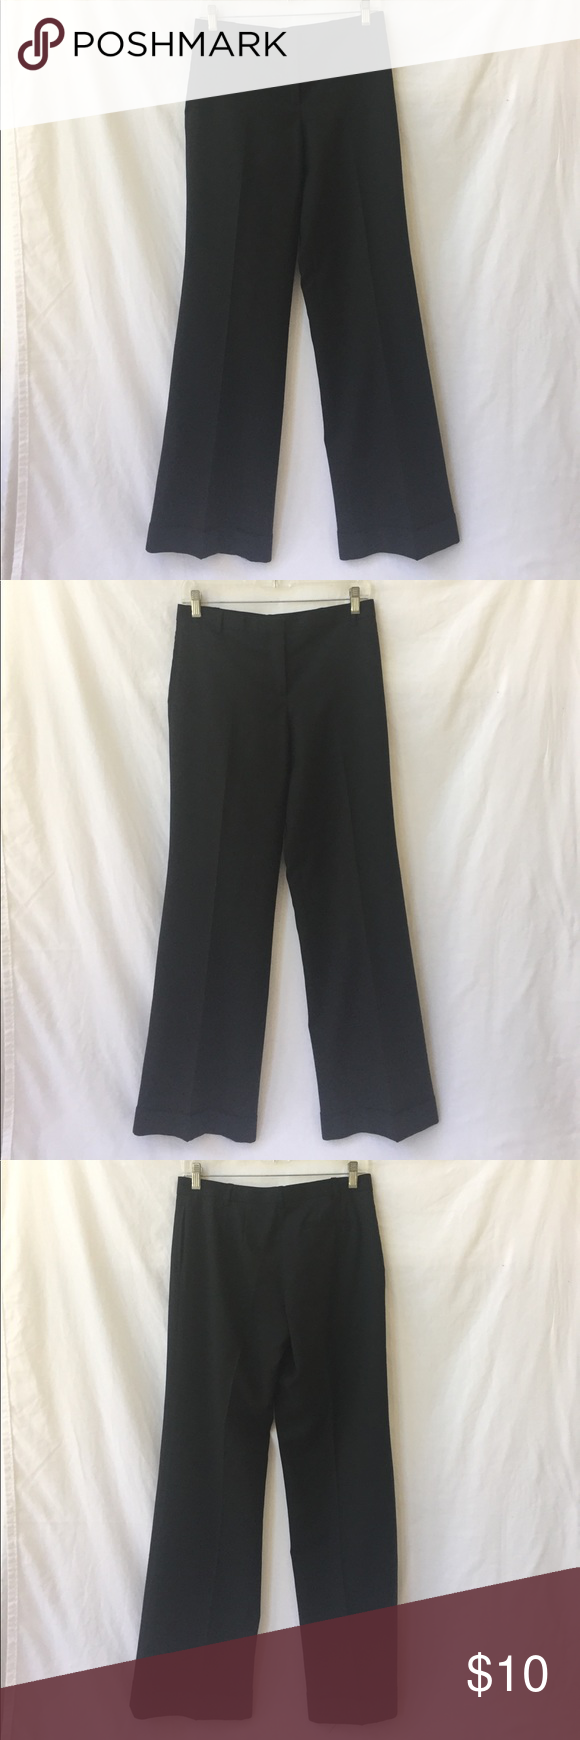 J Crew 100% wool pants size 2 EUC• cuffed leg• staple pants for your wardrobe! J Crew Pants Trousers